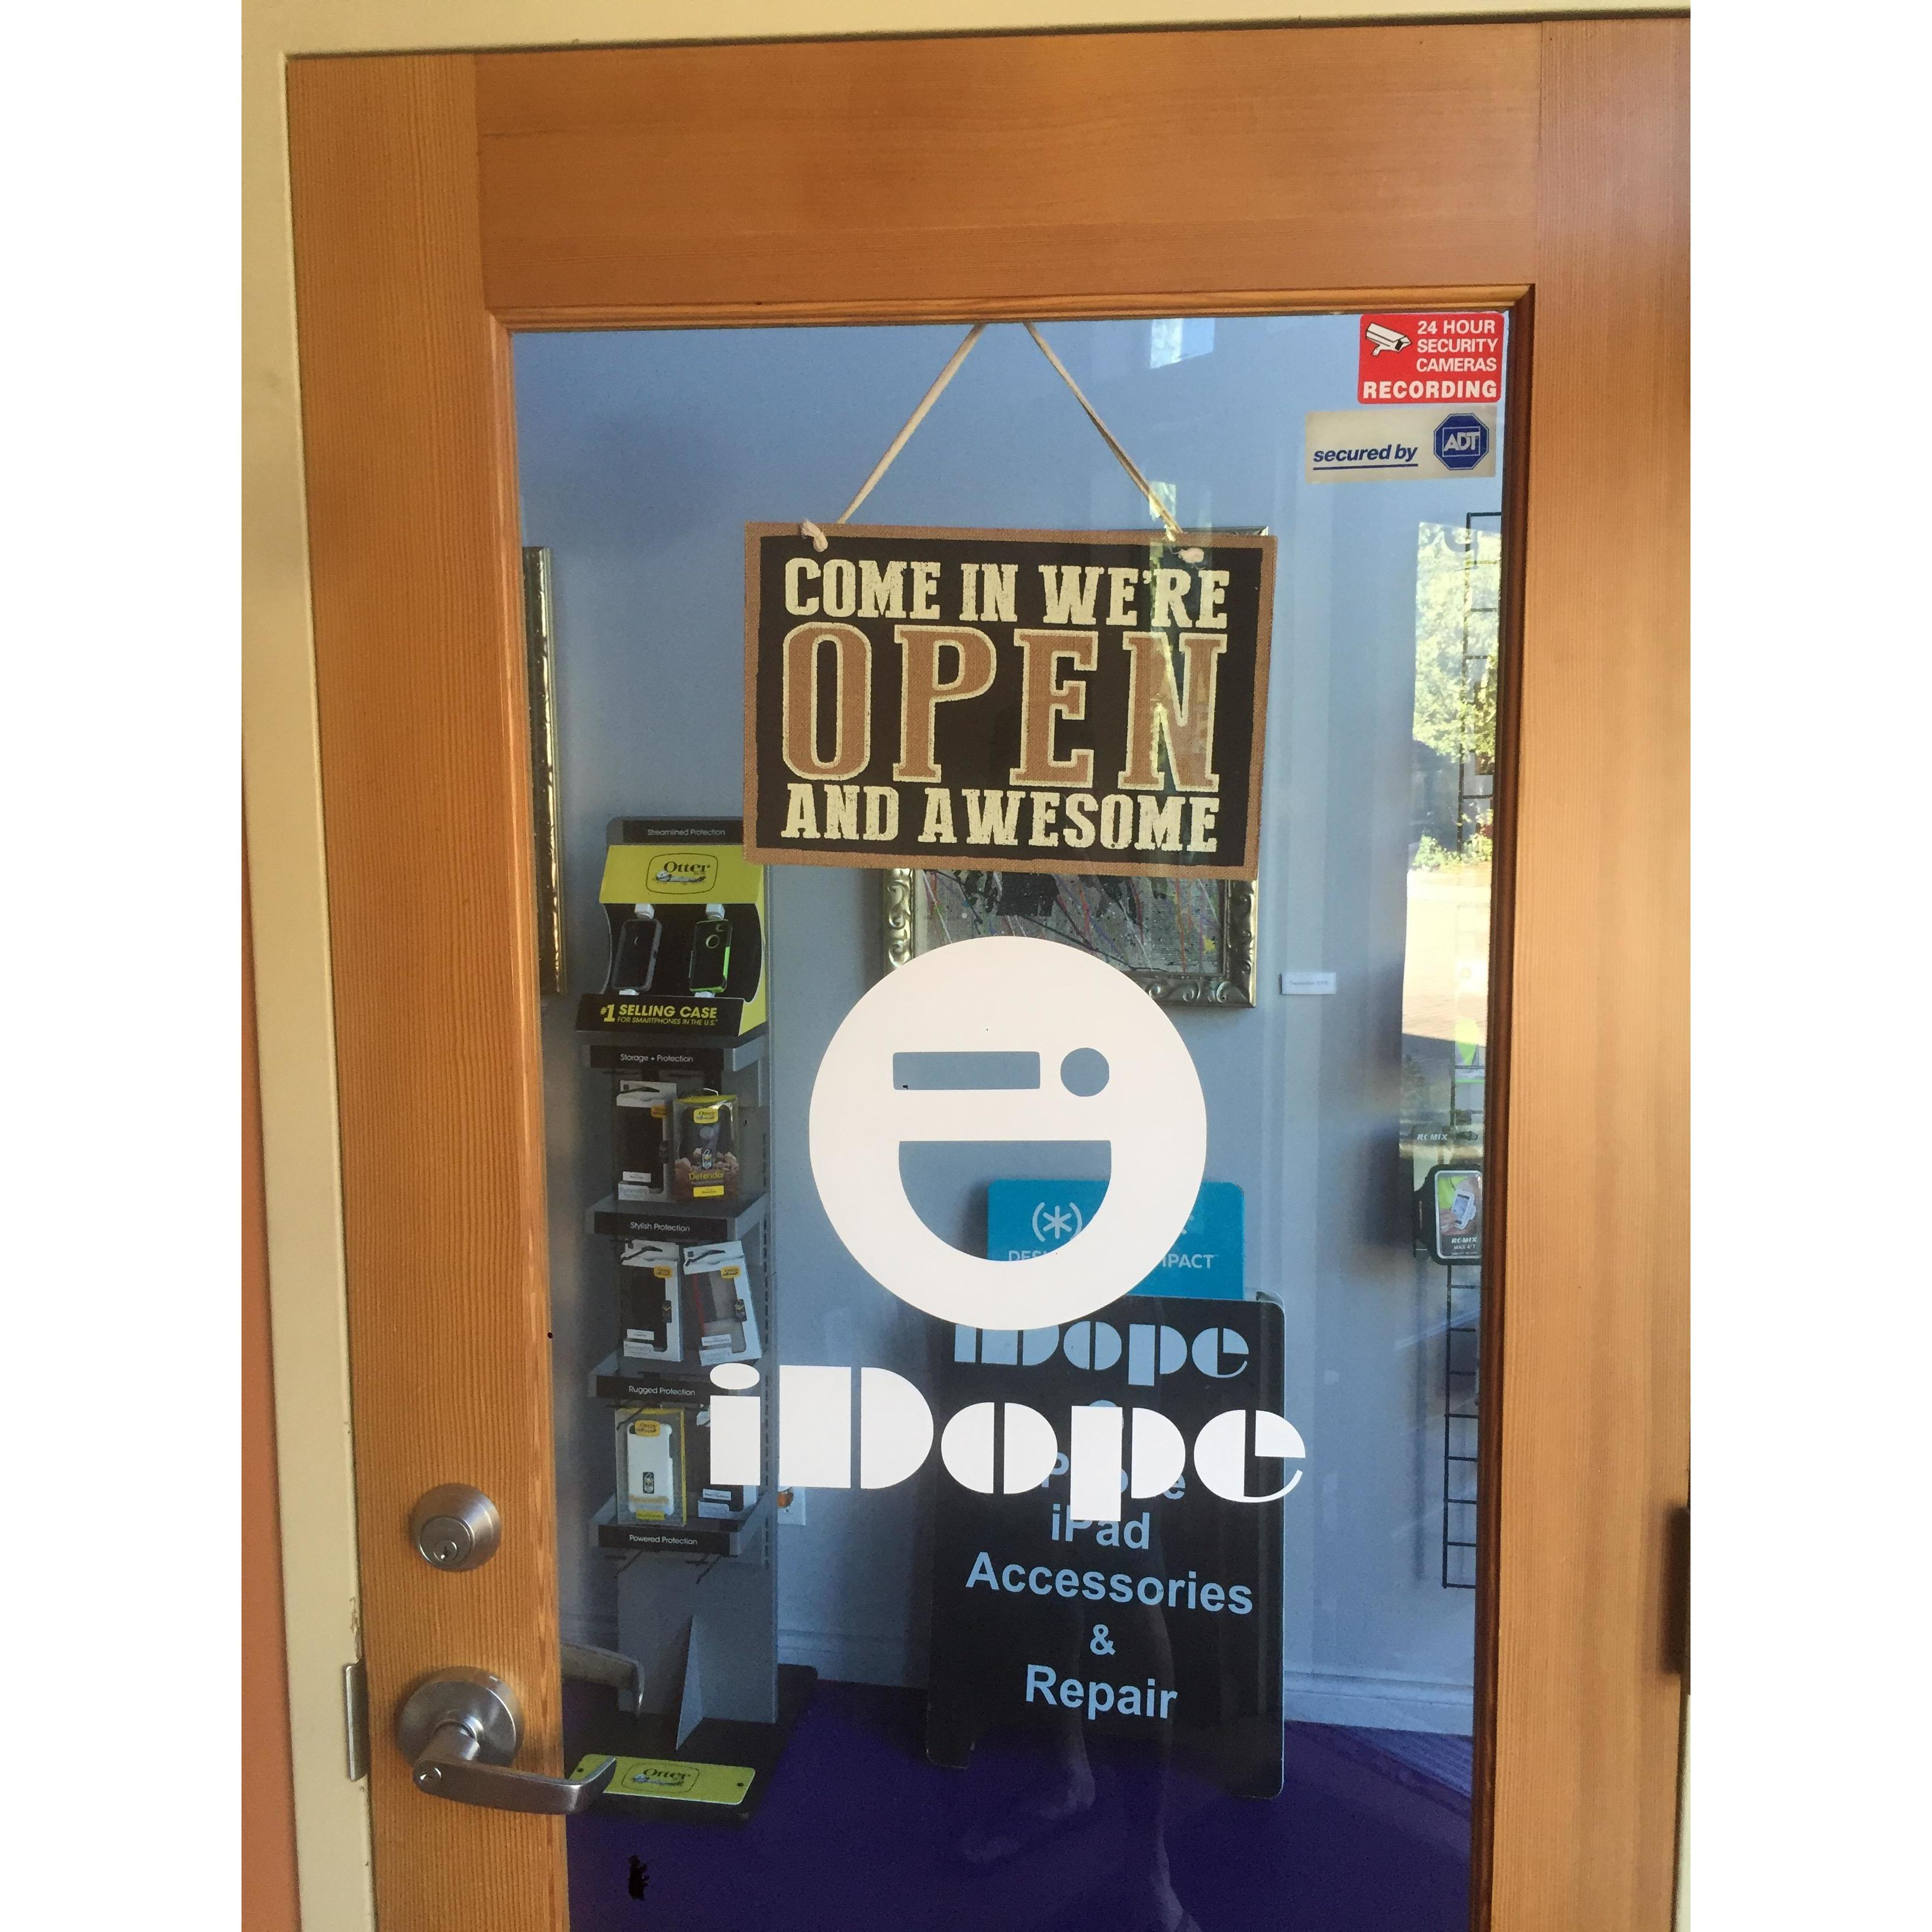 iDope Customs Ballard - Seattle iPhone, iPad, Macbook Computer Repair and Accessories image 8